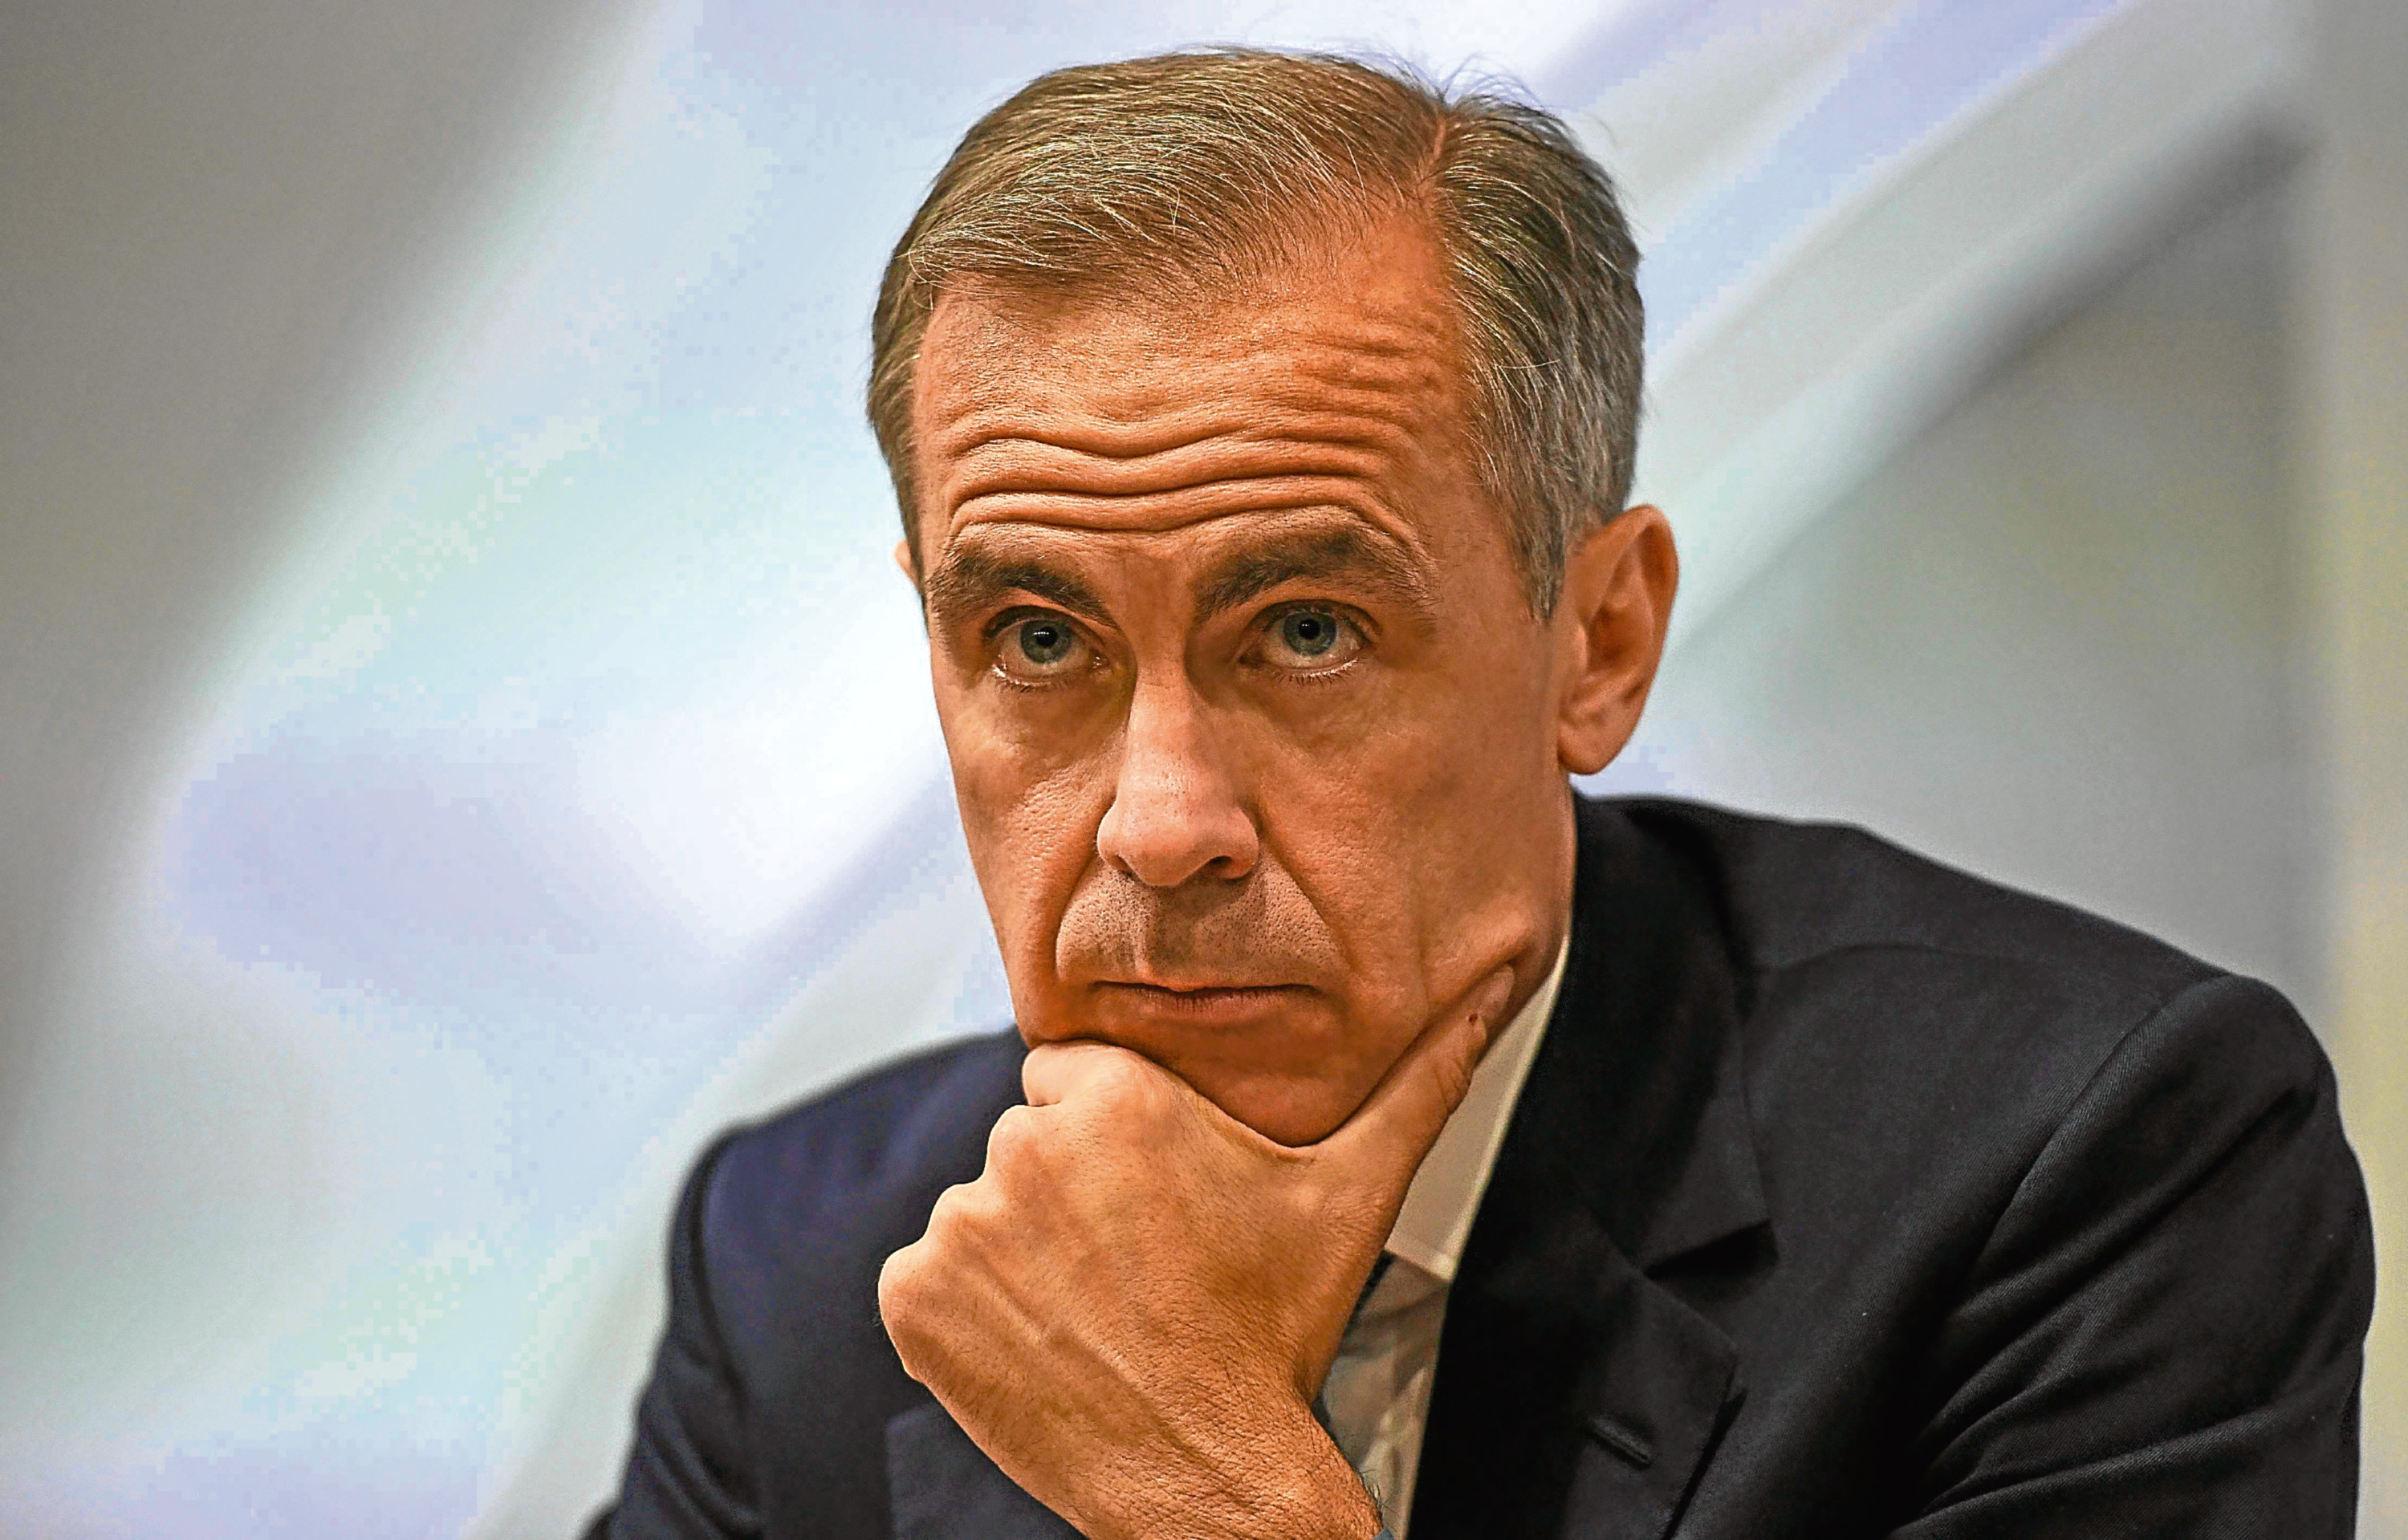 The Bank of England governor was Mark Carney until March 2020.